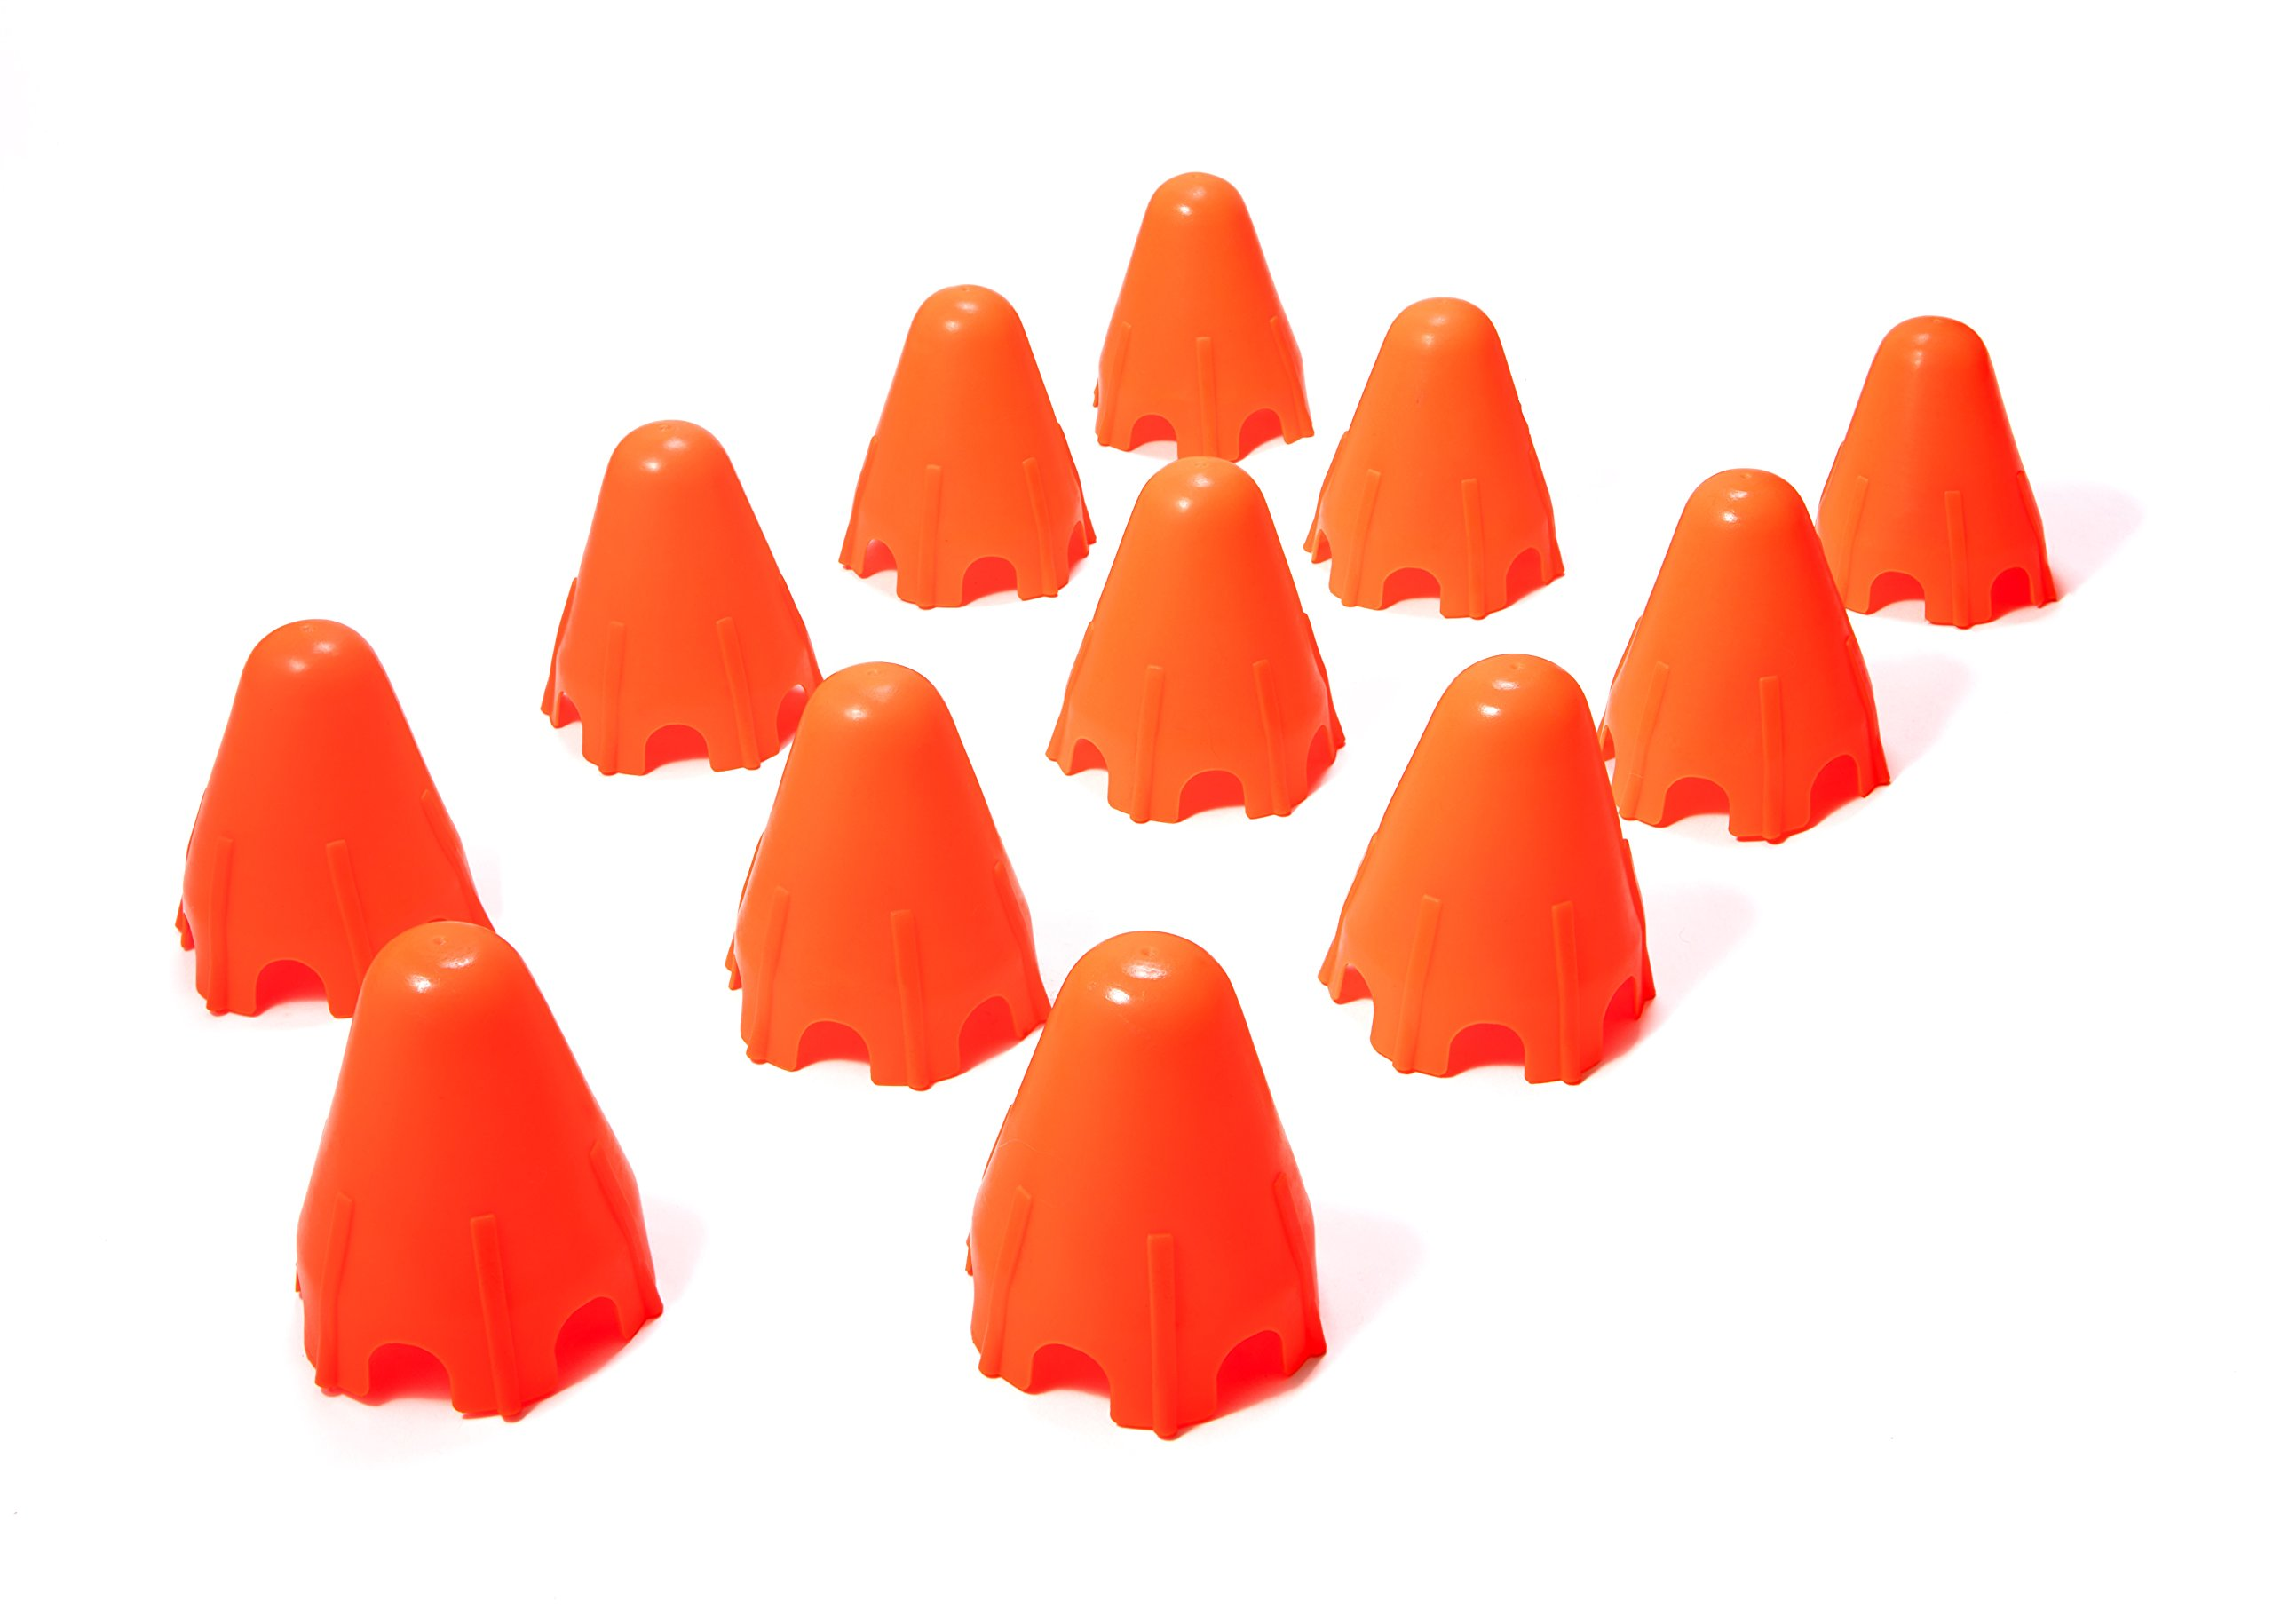 "Shot Taker Co. 4.5 inch Plastic Traffic Cones (Set of 12) | Unique Design| Perfect for Theme Party, Sports, Kids Games, Festival, Traffic, Events| Multipurpose 4.5"" Markers"